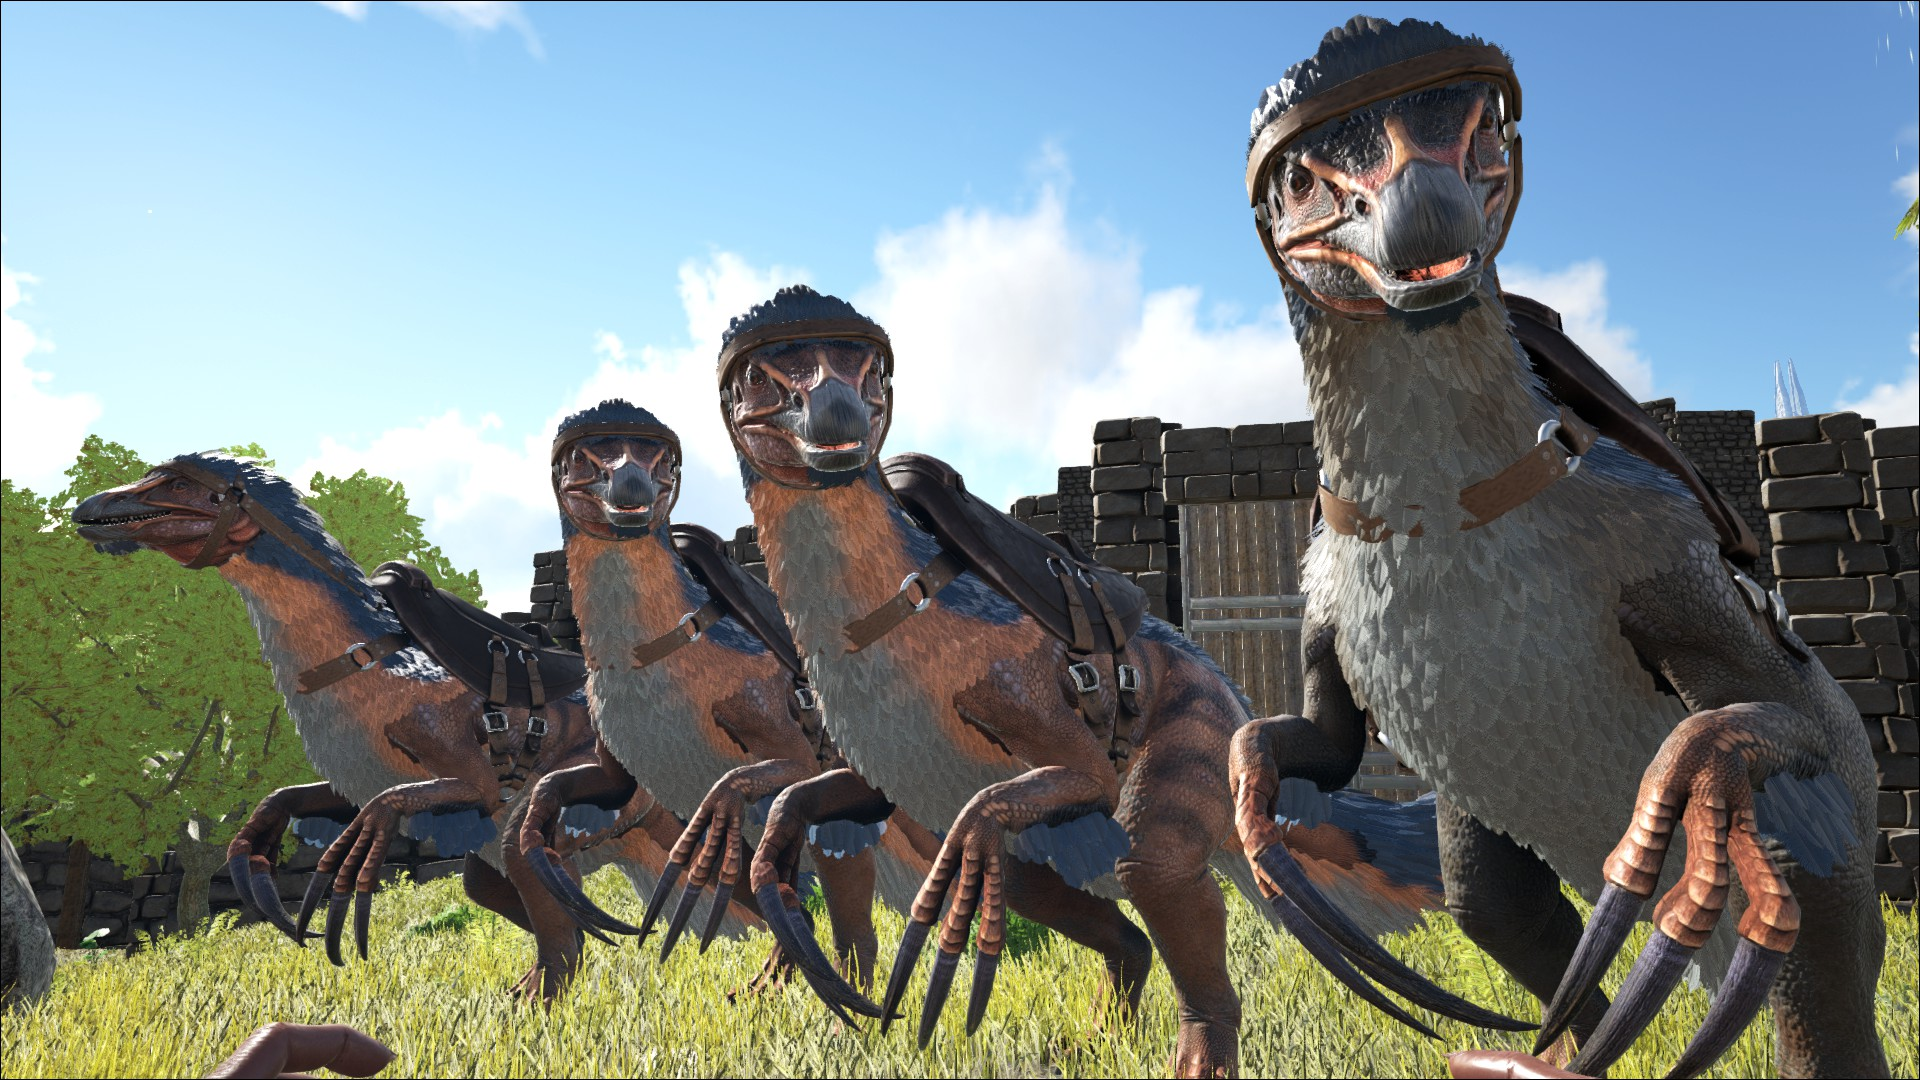 Ark:  Survival Evolved AB812688E72991D93FBF8FEC23654A1AFD184B4C